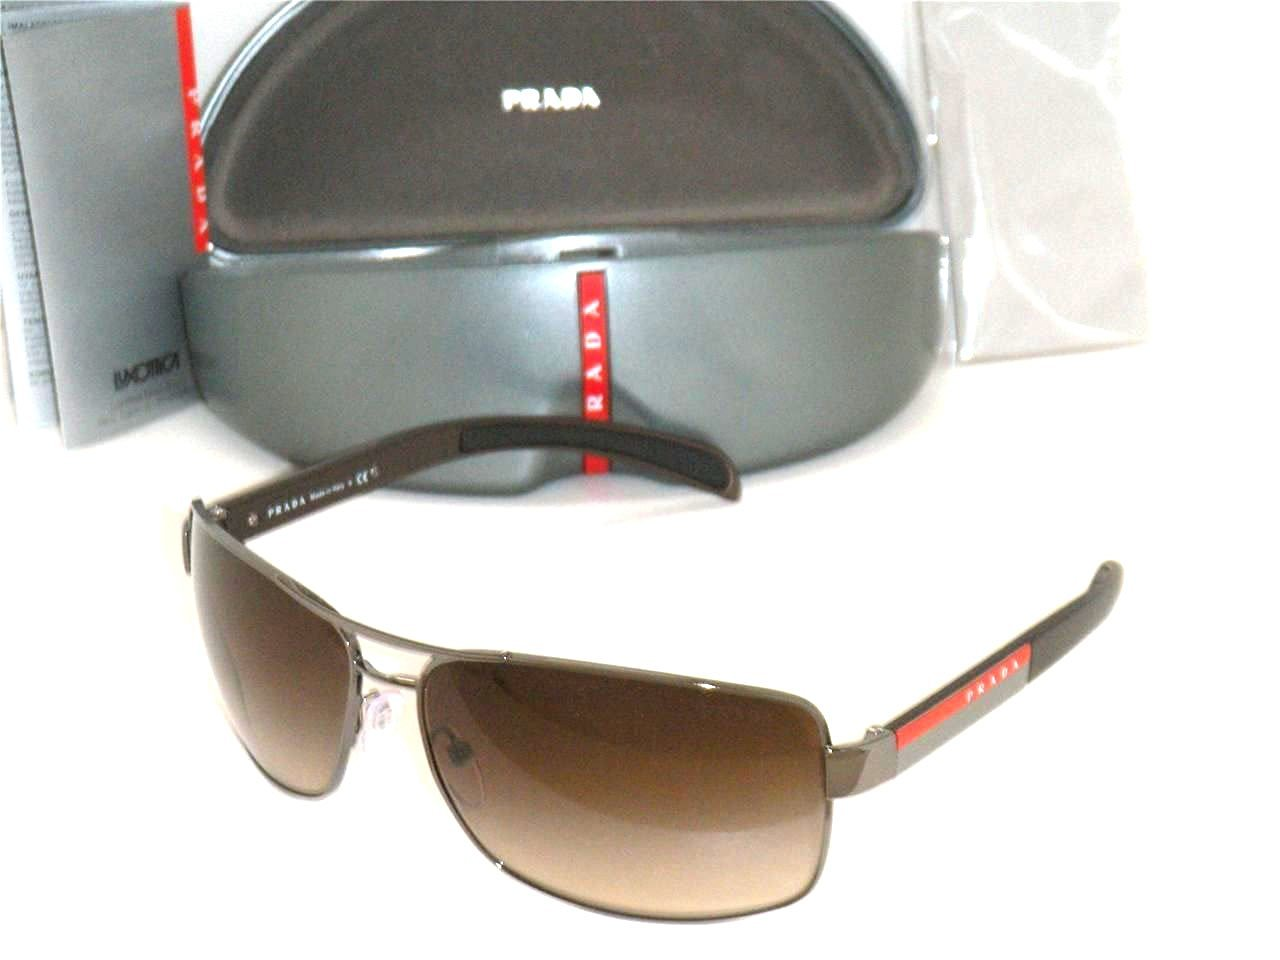 a13ae84440 Get Quotations · New Prada Sunglasses Ps 54IS 5AV6S1 Authentic Gunmetal  with Brown Gradient 65 mm